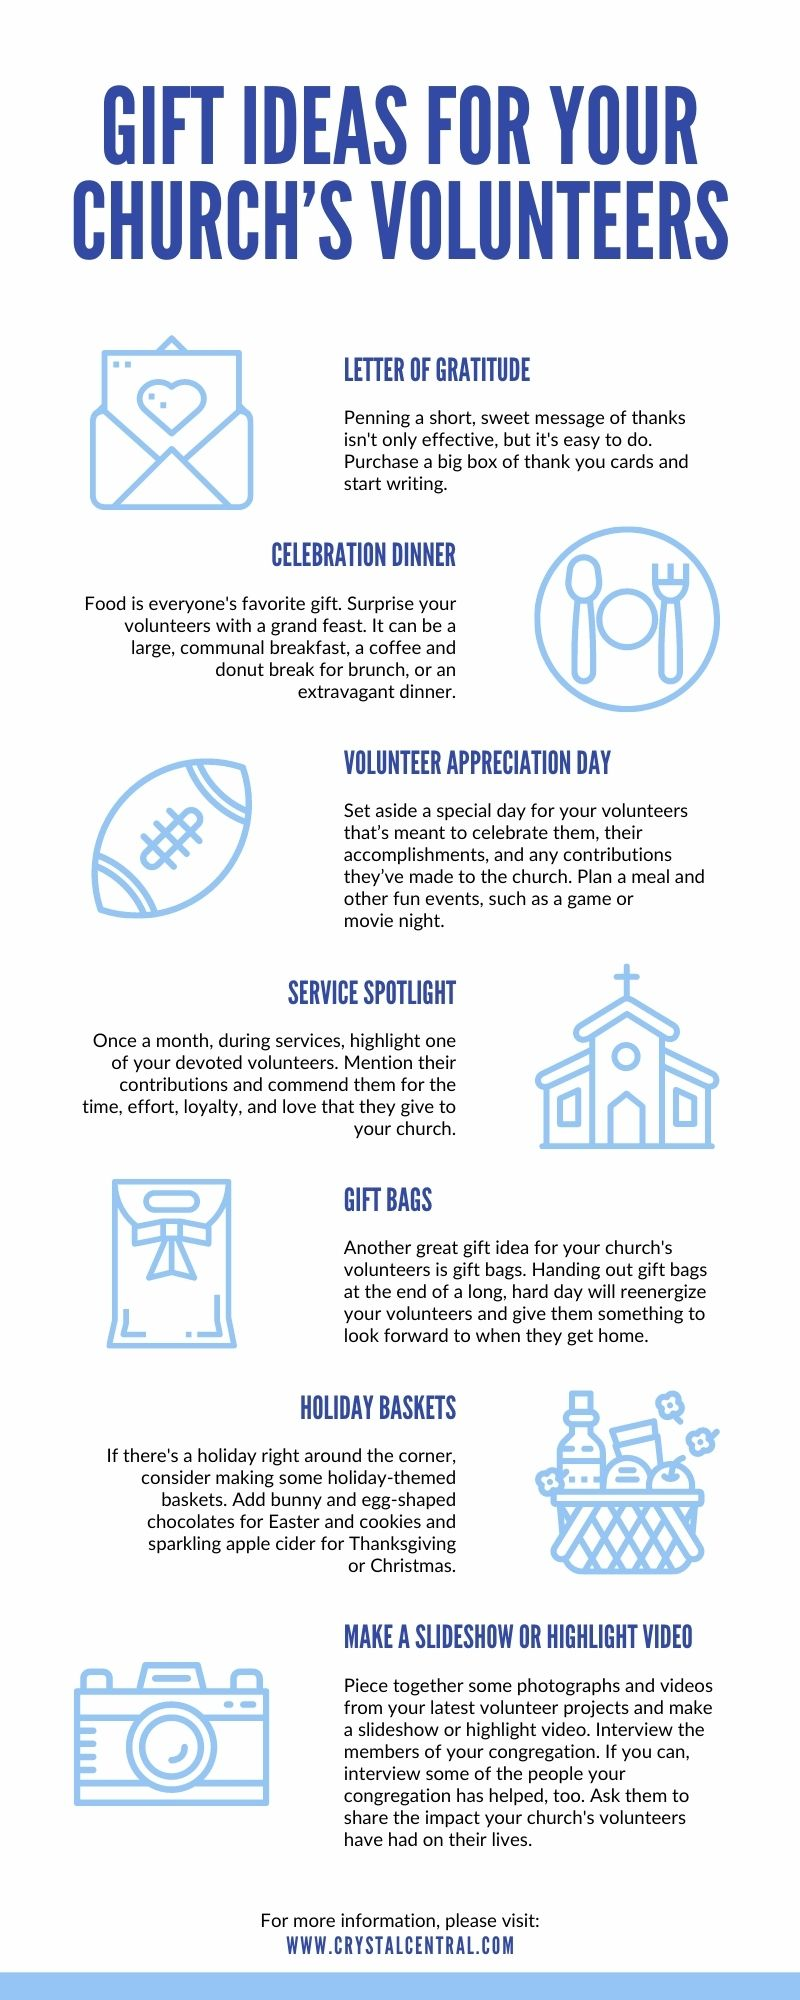 Gift Ideas for Your Church's Volunteers